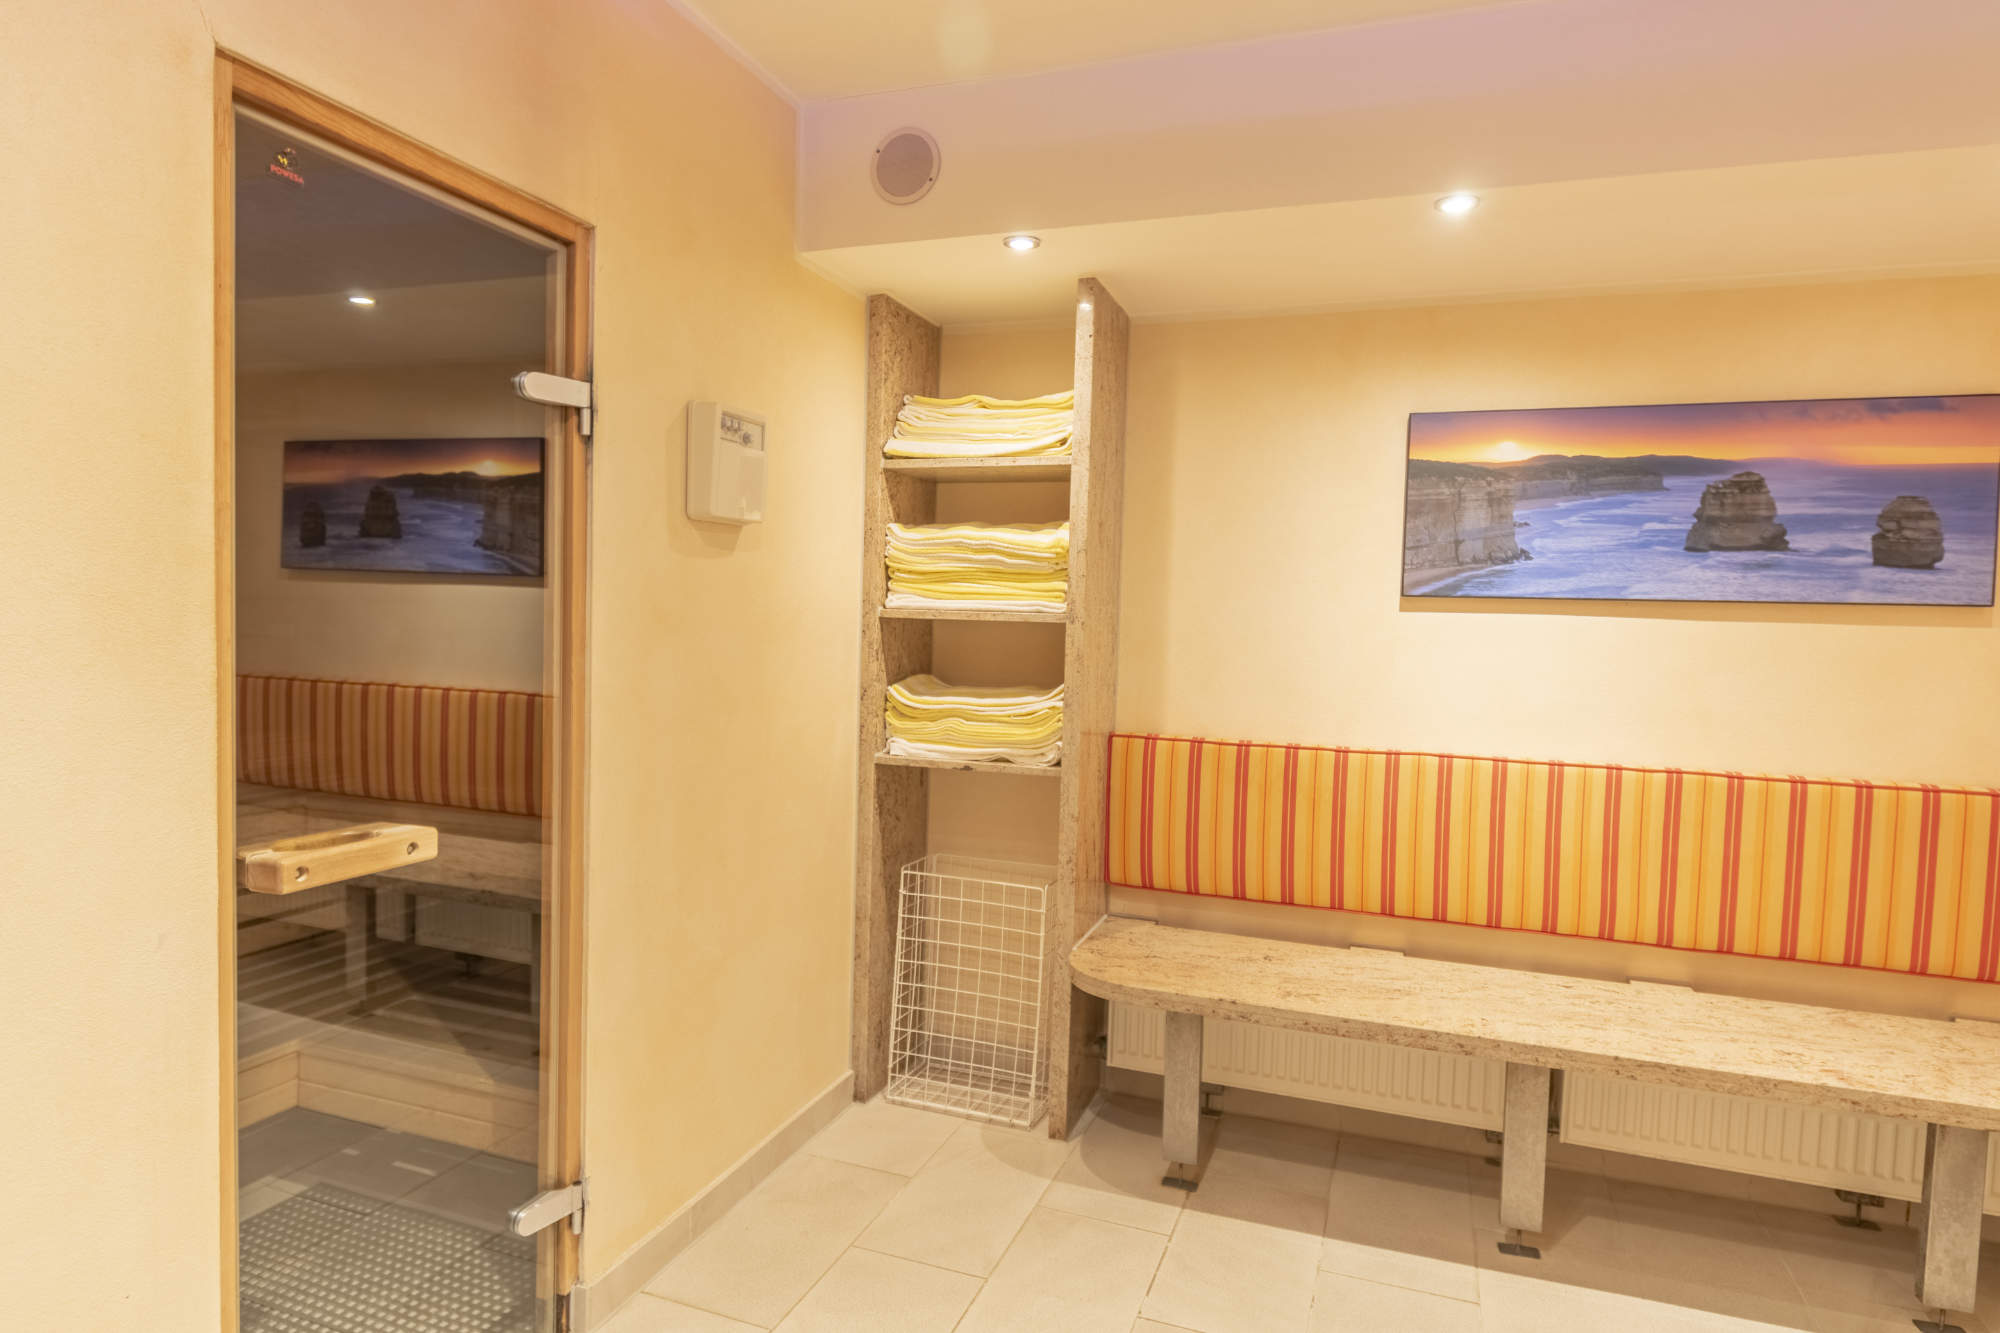 Seating in the area in front of the sauna